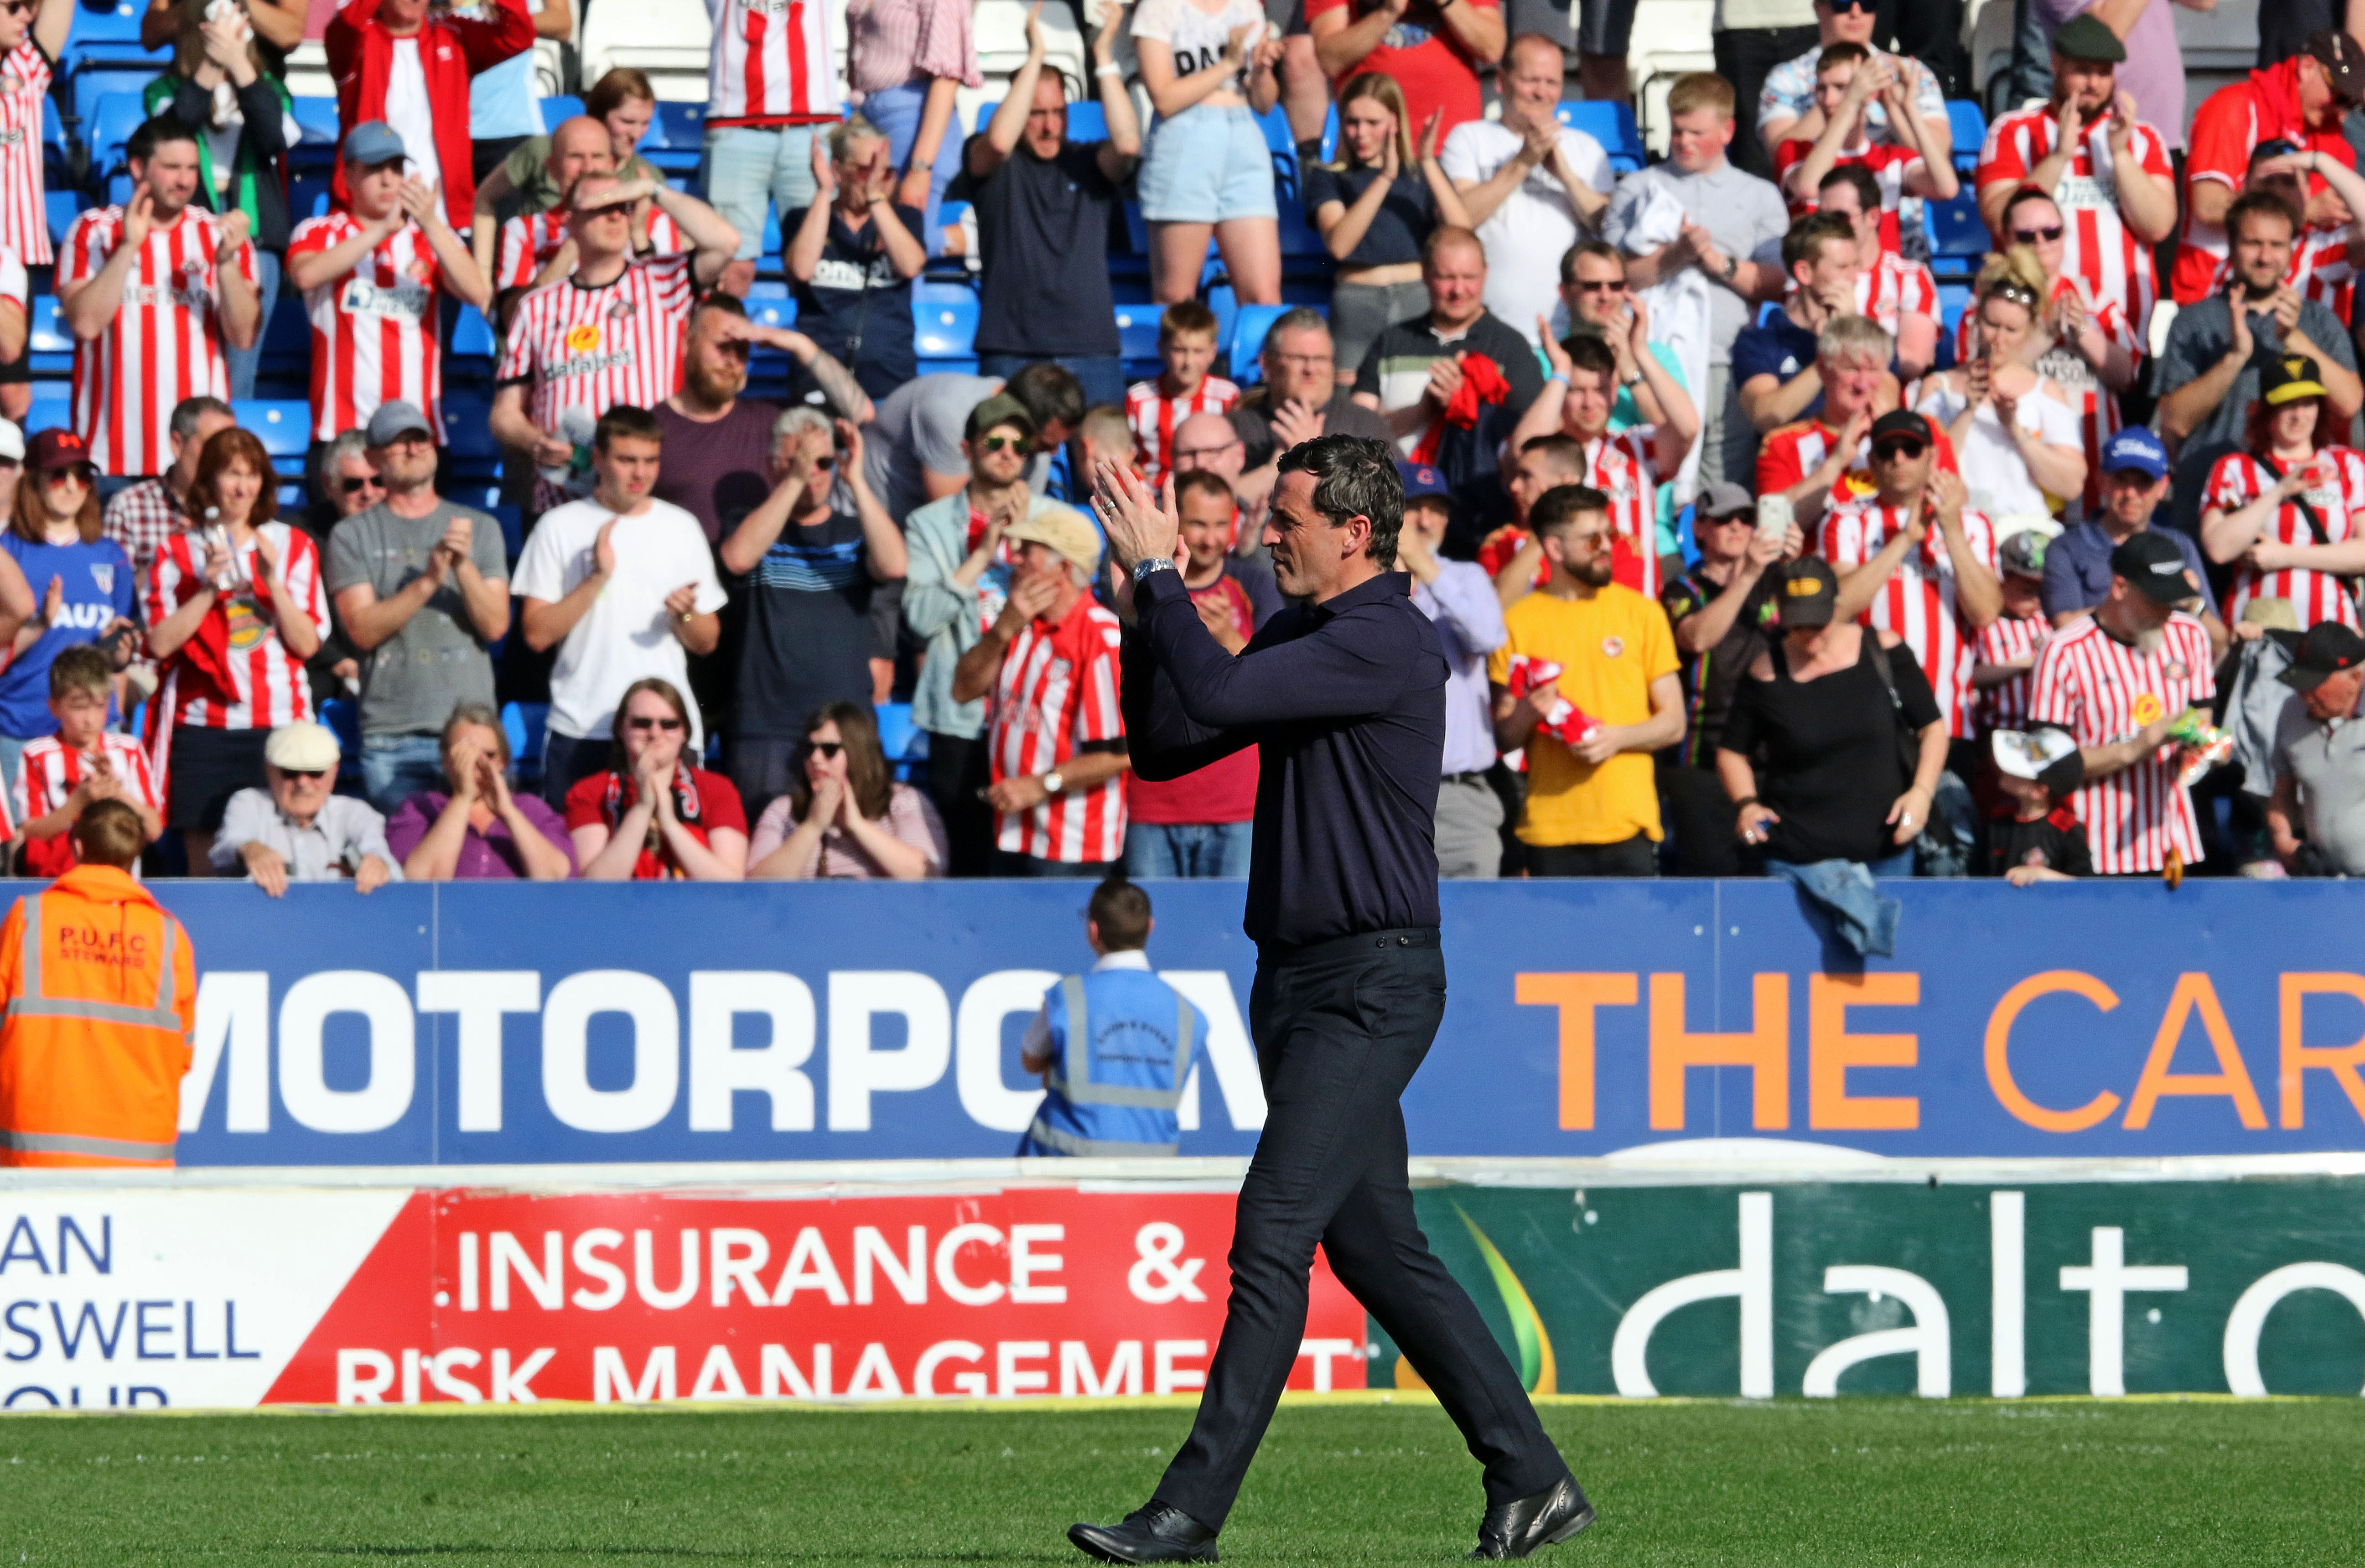 FIVE reasons why I'm looking forward to Sunderland's HUGE play-off game on Saturday v Portsmouth